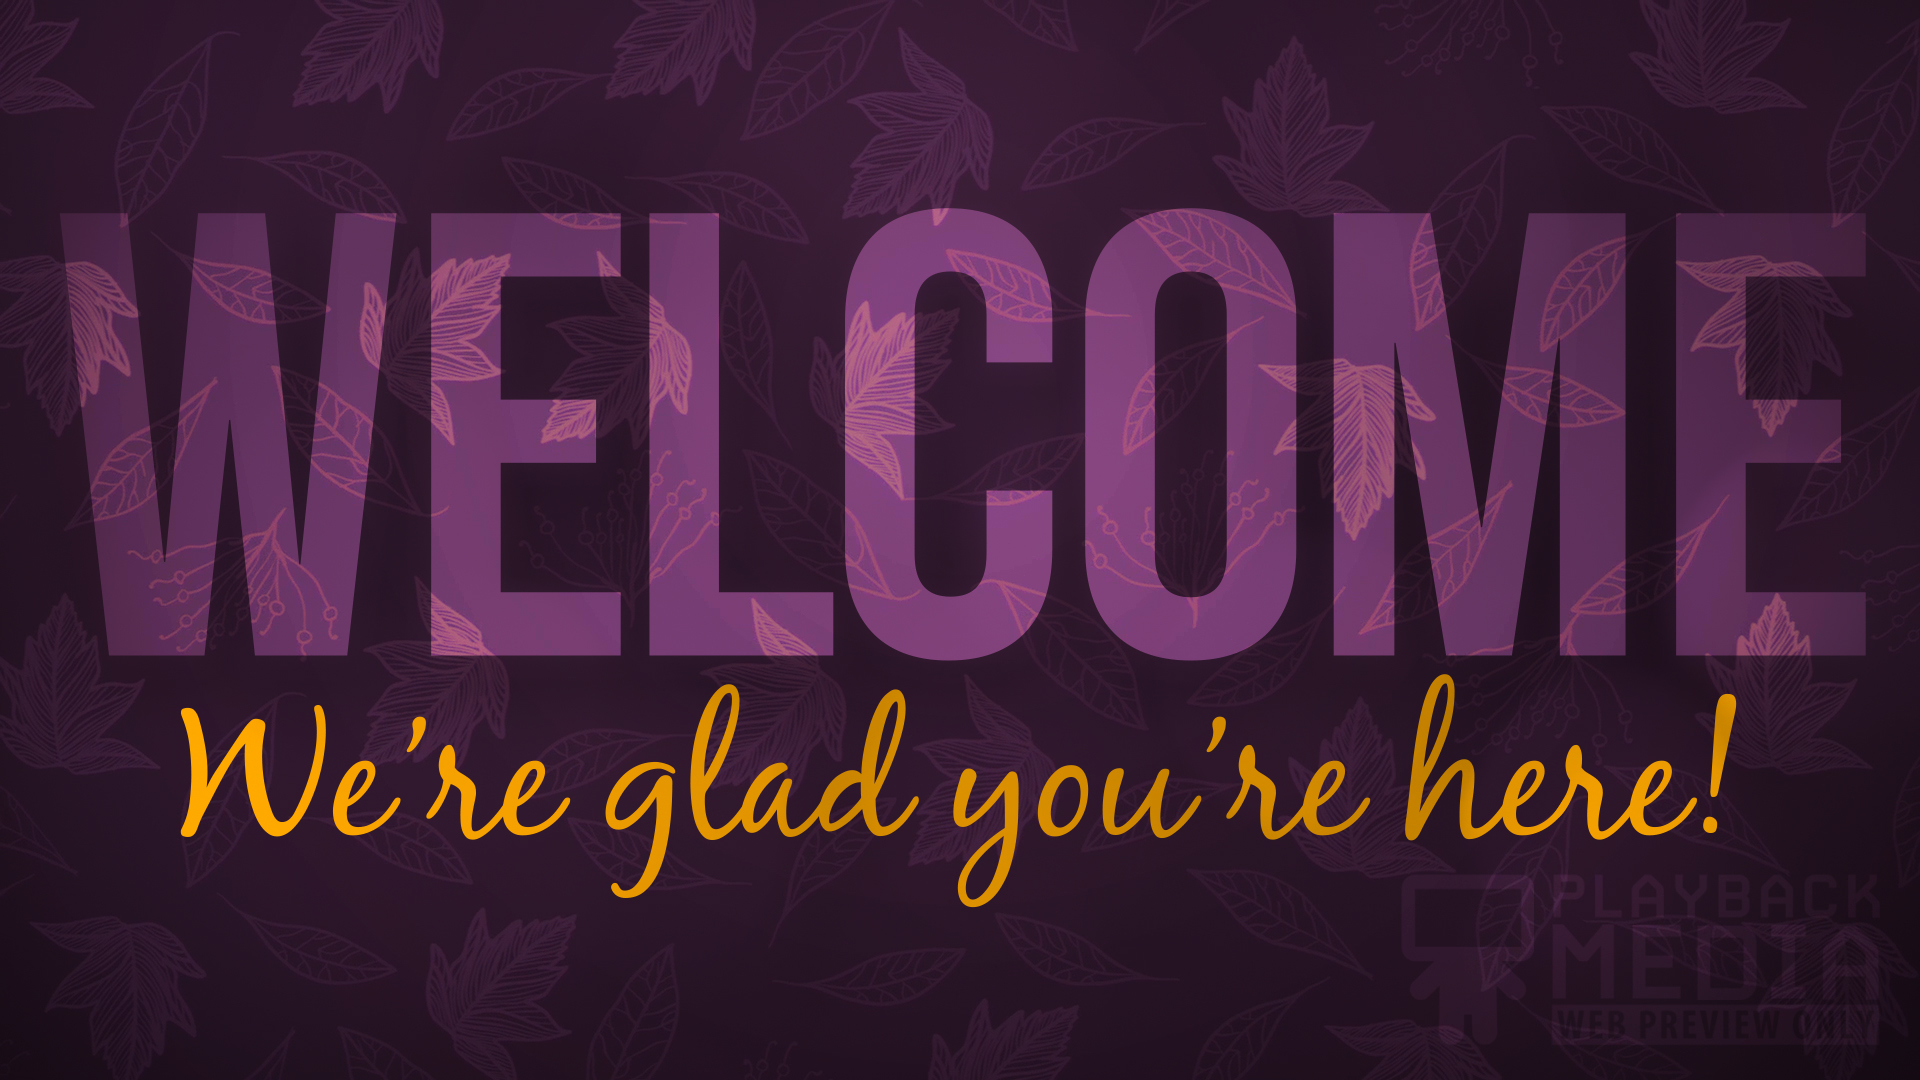 Purple_Fall_Welcome_Motion_prod.jpg